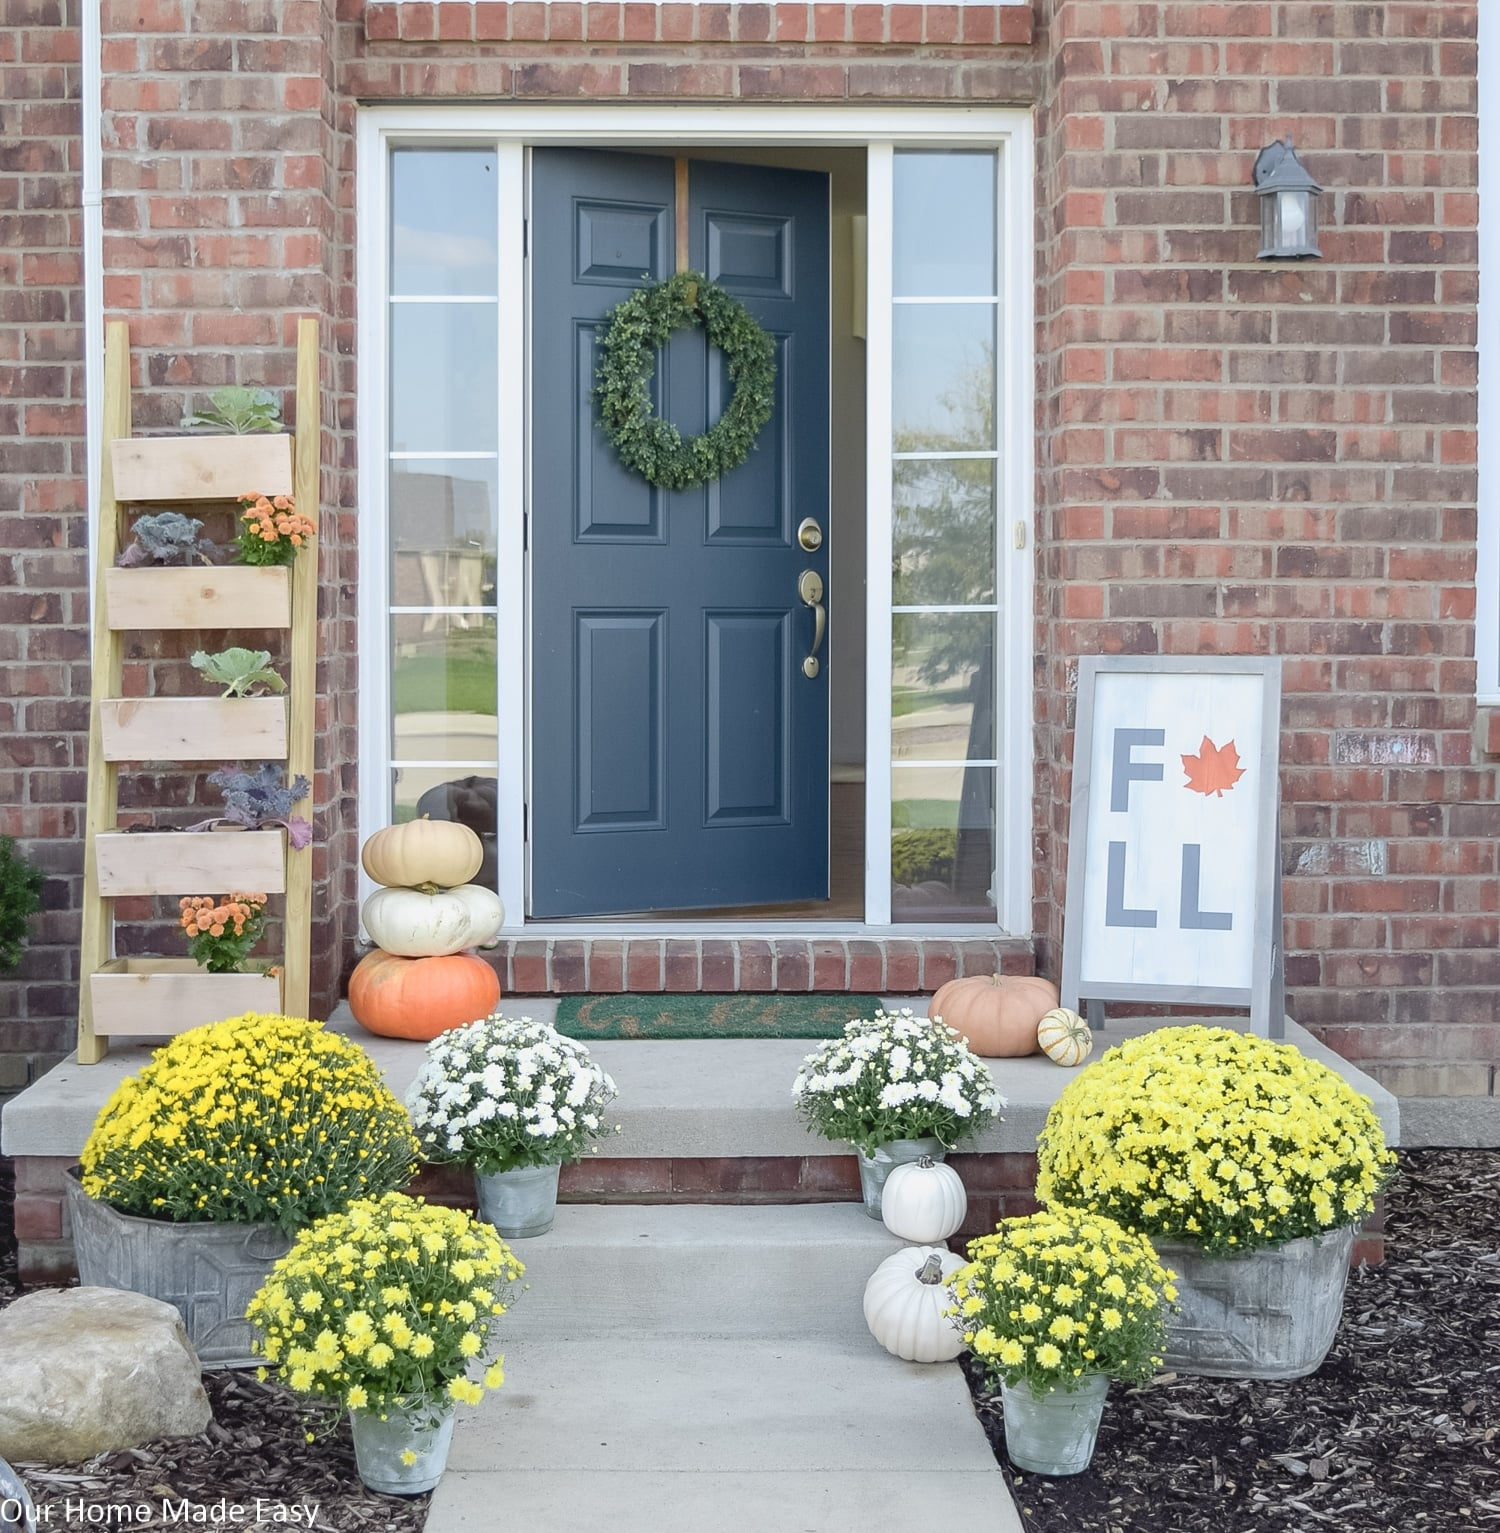 this inviting fall front porch is decorated with arrangements of bright colored mums